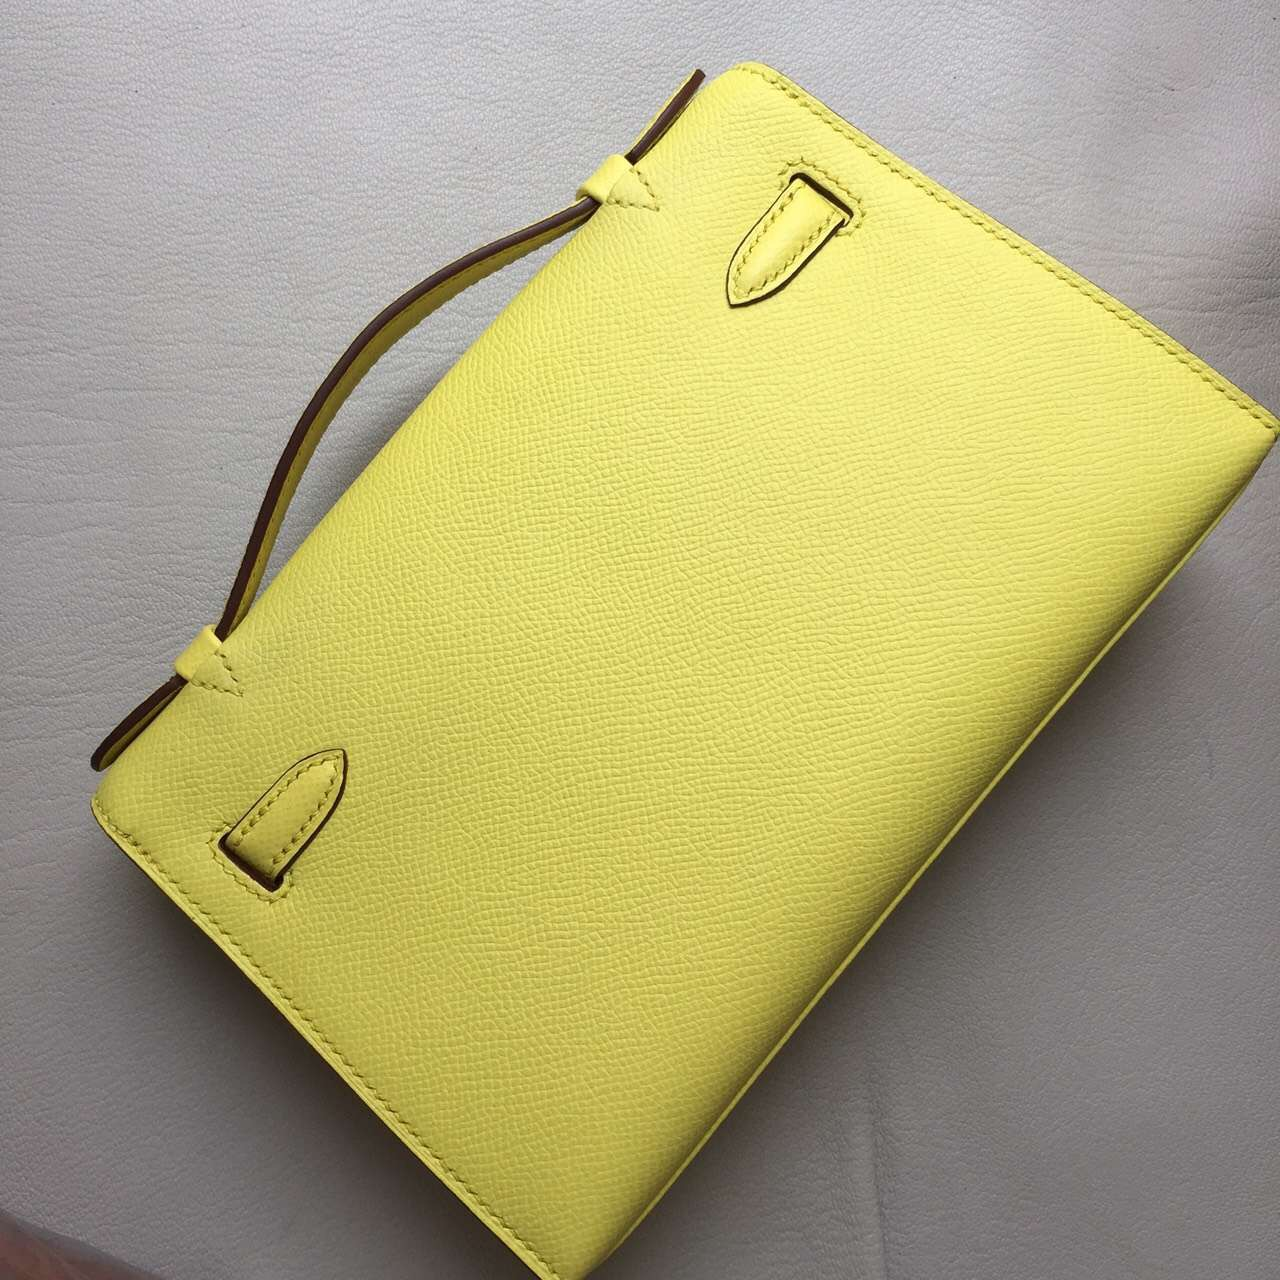 Discount Hermes Lemon Yellow Epsom Calfskin Leather Mini Kelly Bag 22CM